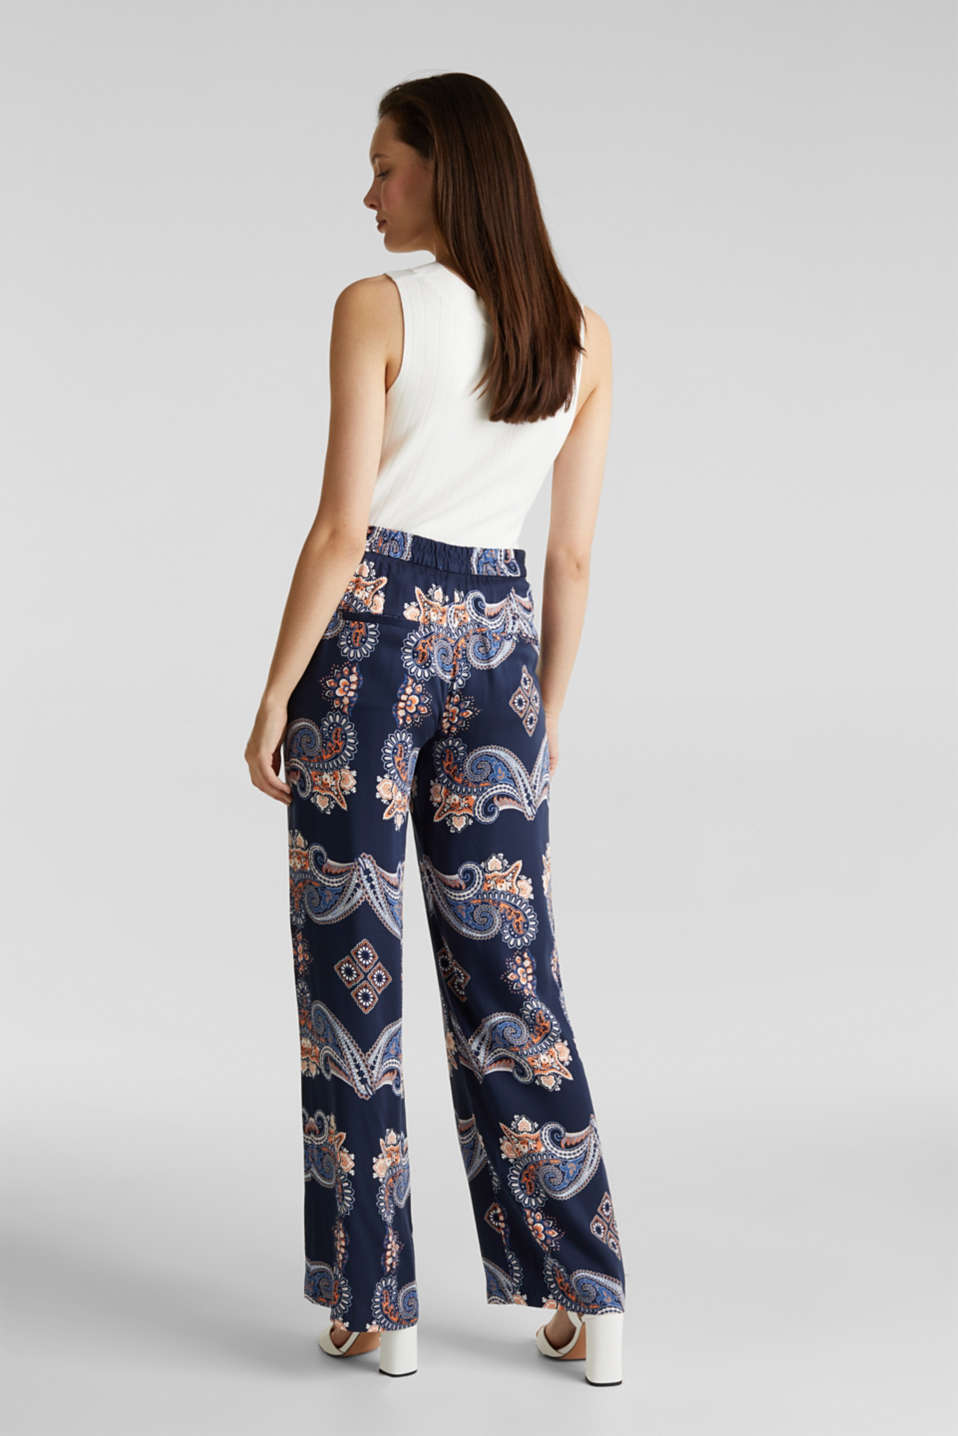 Flowing palazzo trousers with a print, NAVY 4, detail image number 3